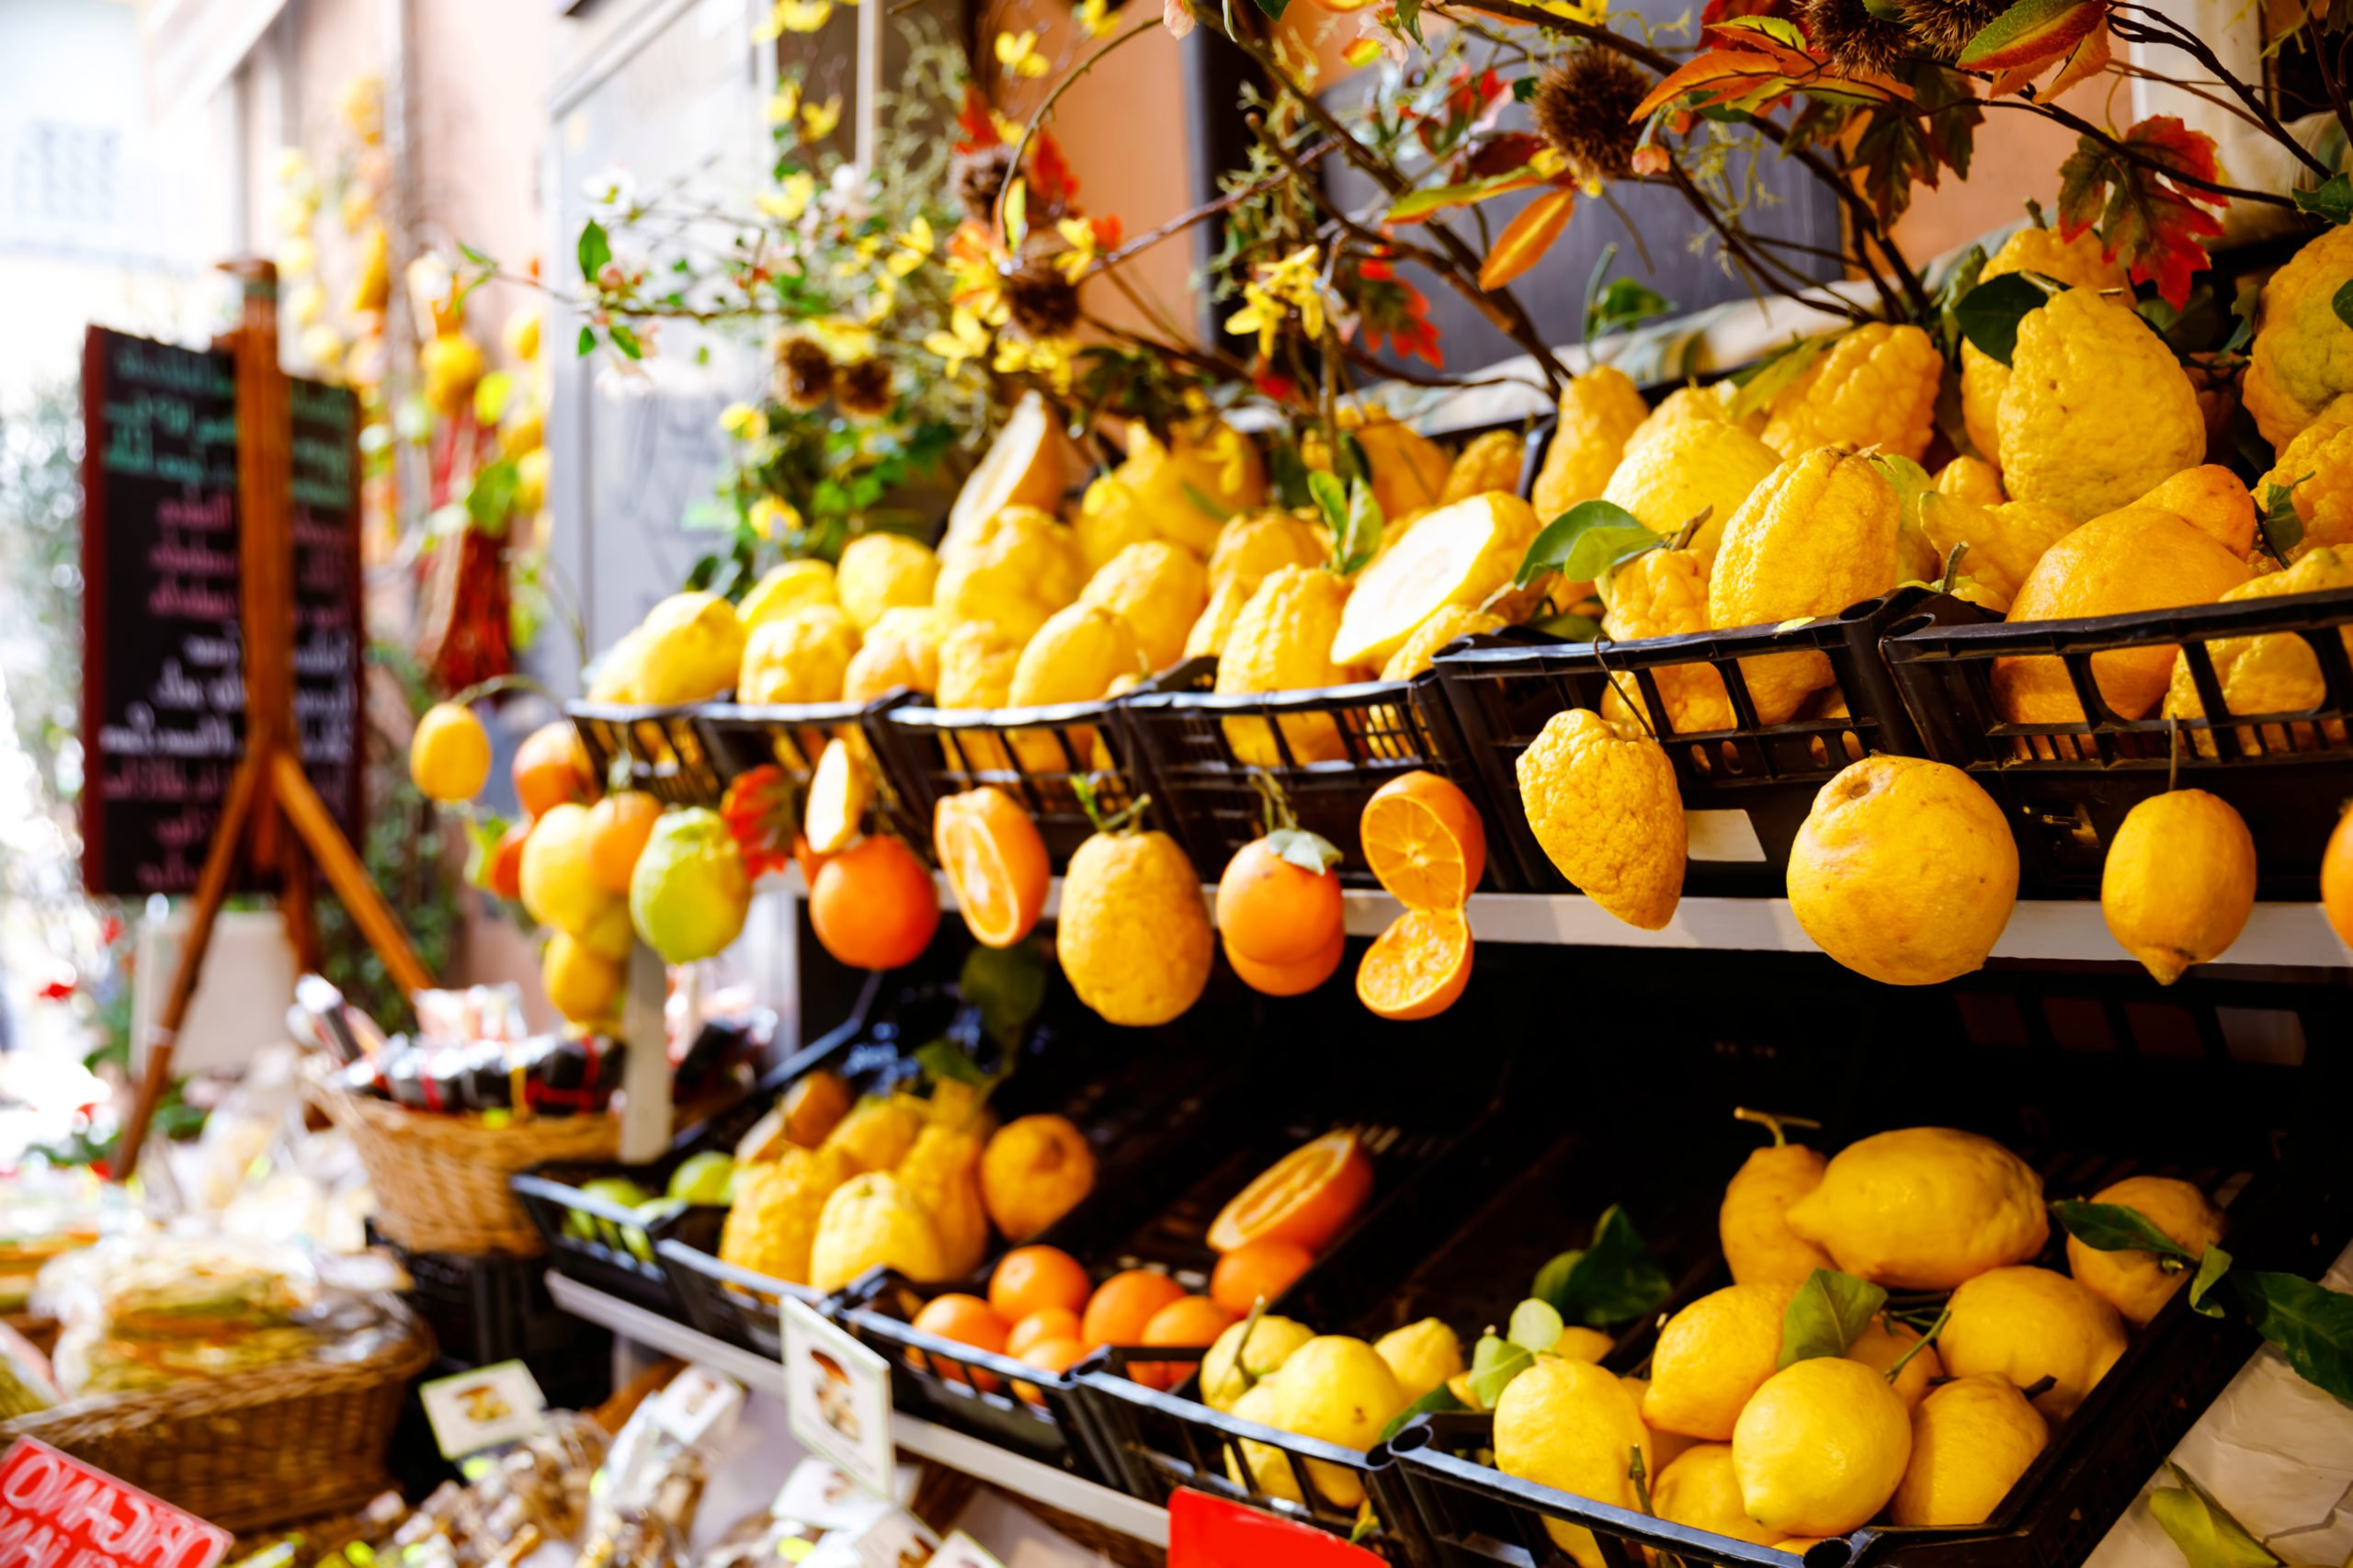 Visit The Traditional Markets On The Taste Of Sicily 8 Day Tour Package